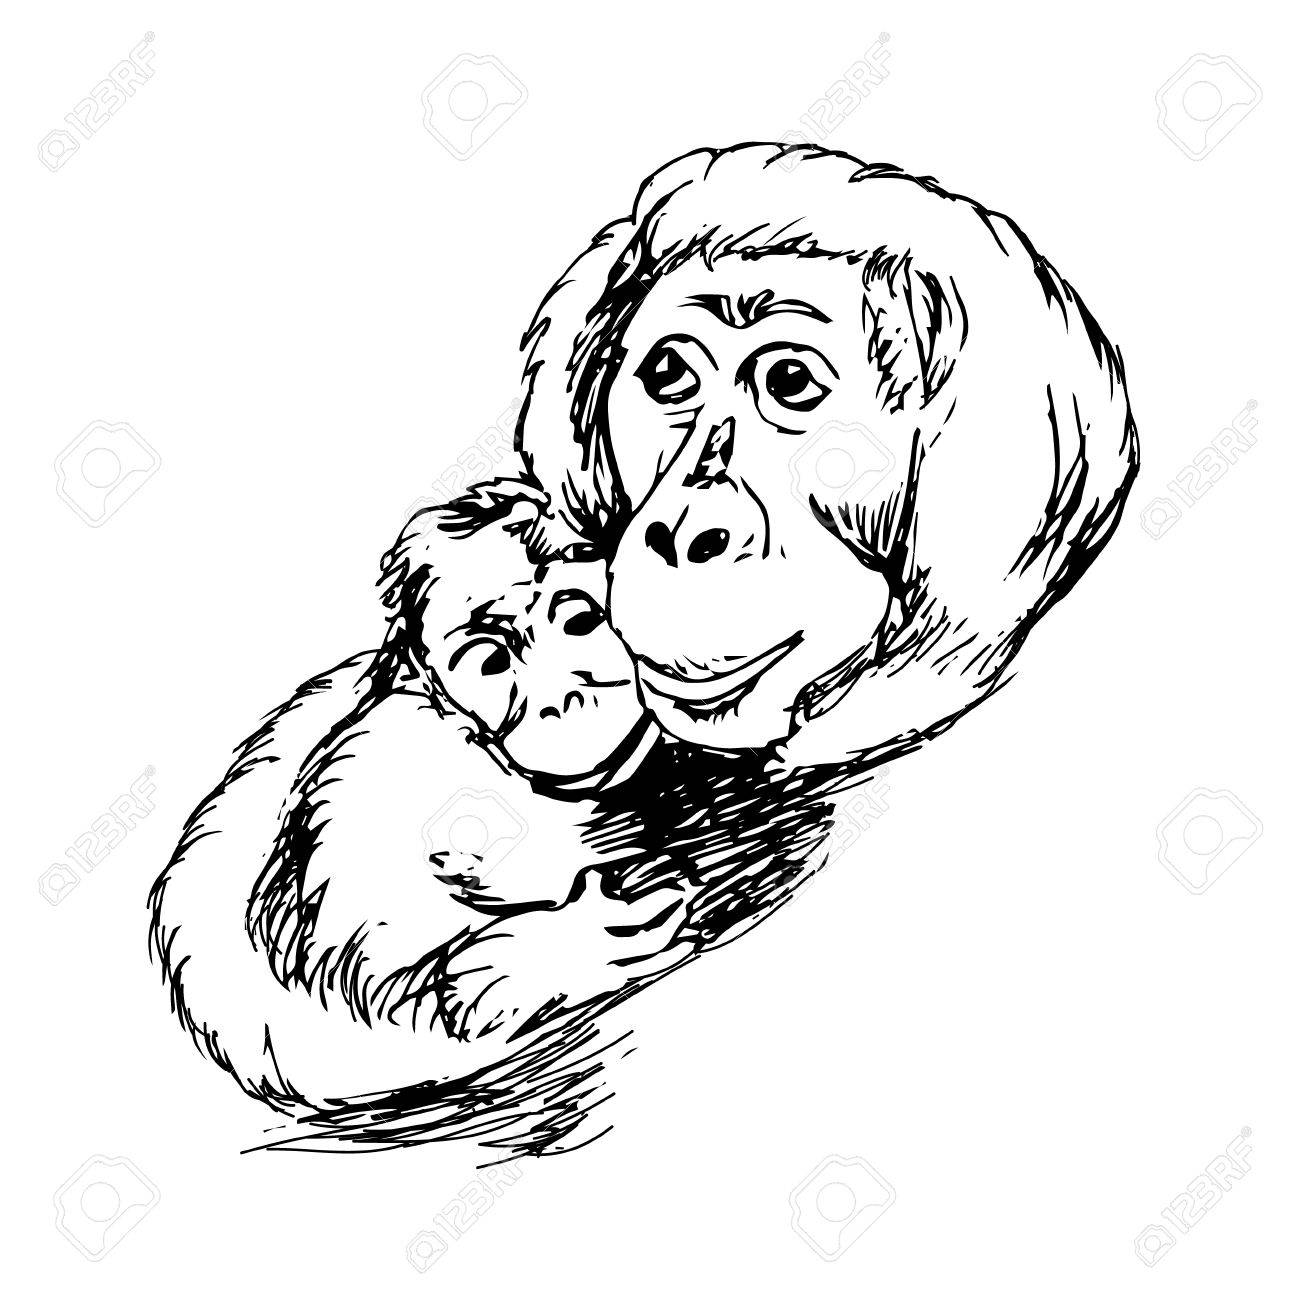 1300x1300 The Graphic Image Of The Monkey, Monkey Head, The Face. Drawing By